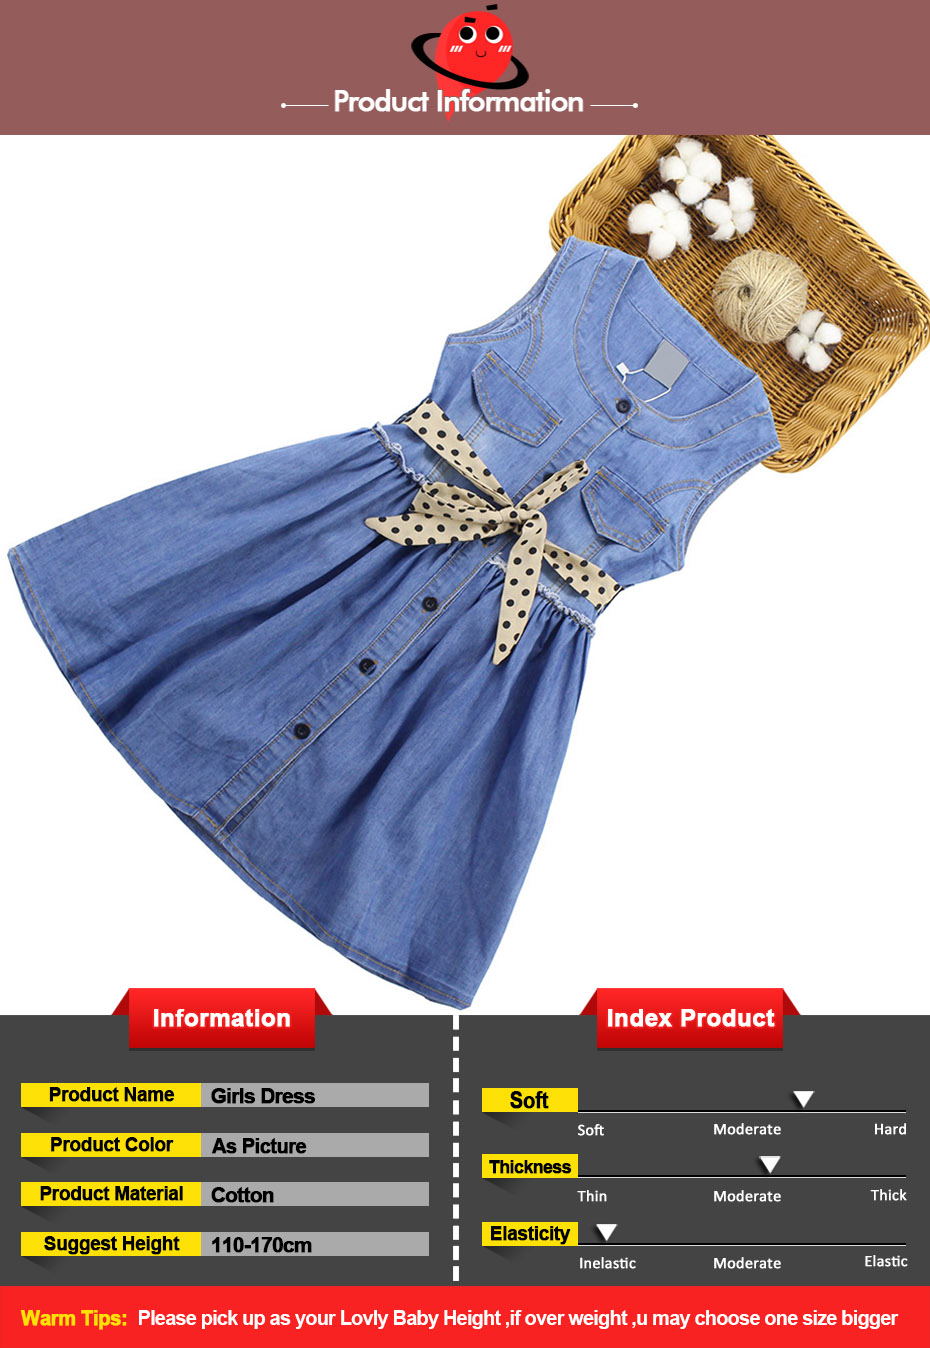 HTB1PWgaQNnaK1RjSZFBq6AW7VXay - Summer Dress For Girls Sleeveless Denim Dress Girl Big Girls Party Dress Kids Summer Clothes For Kids Girl 6 8 10 12 13 14 Year